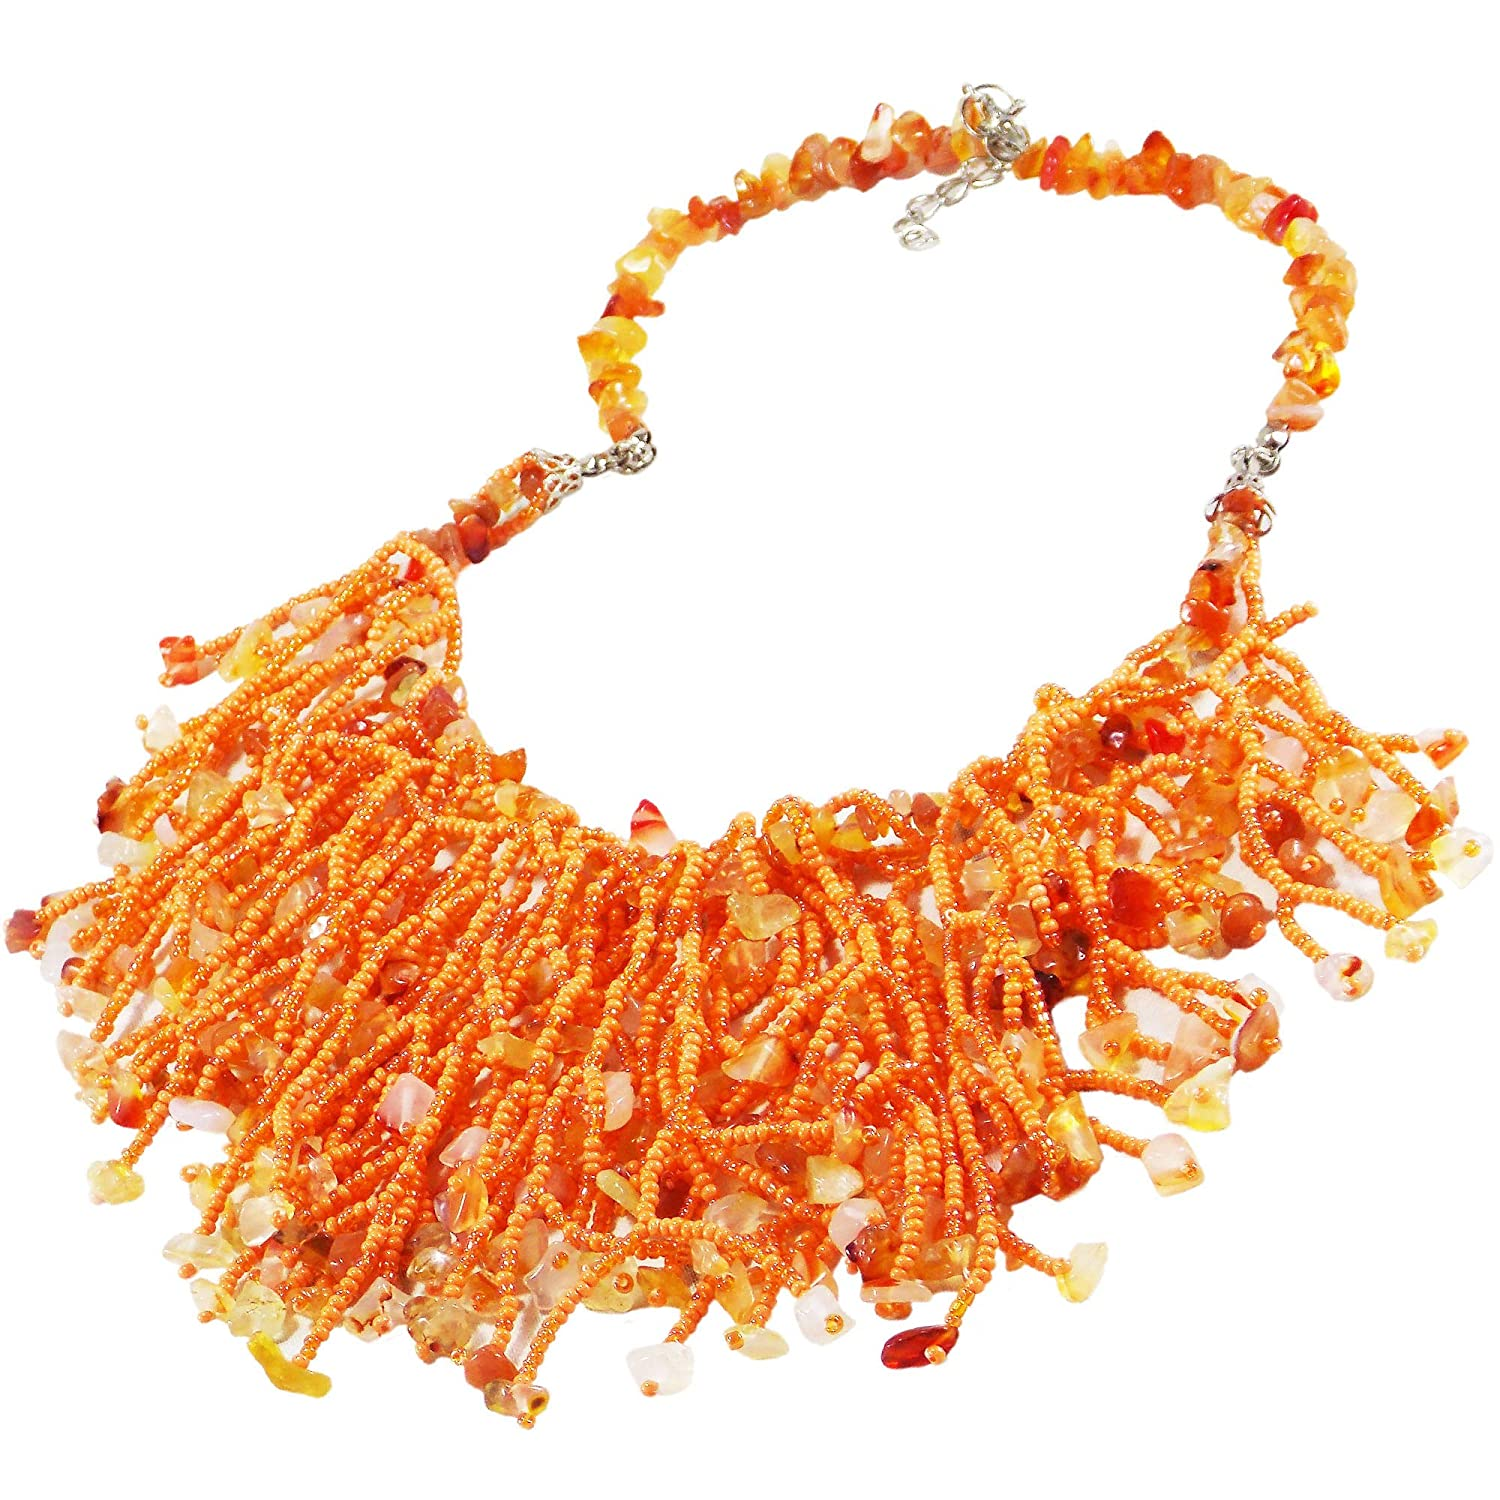 air beaded necklace seed beaded necklace orange beaded necklace seed beaded jewelry gift for women